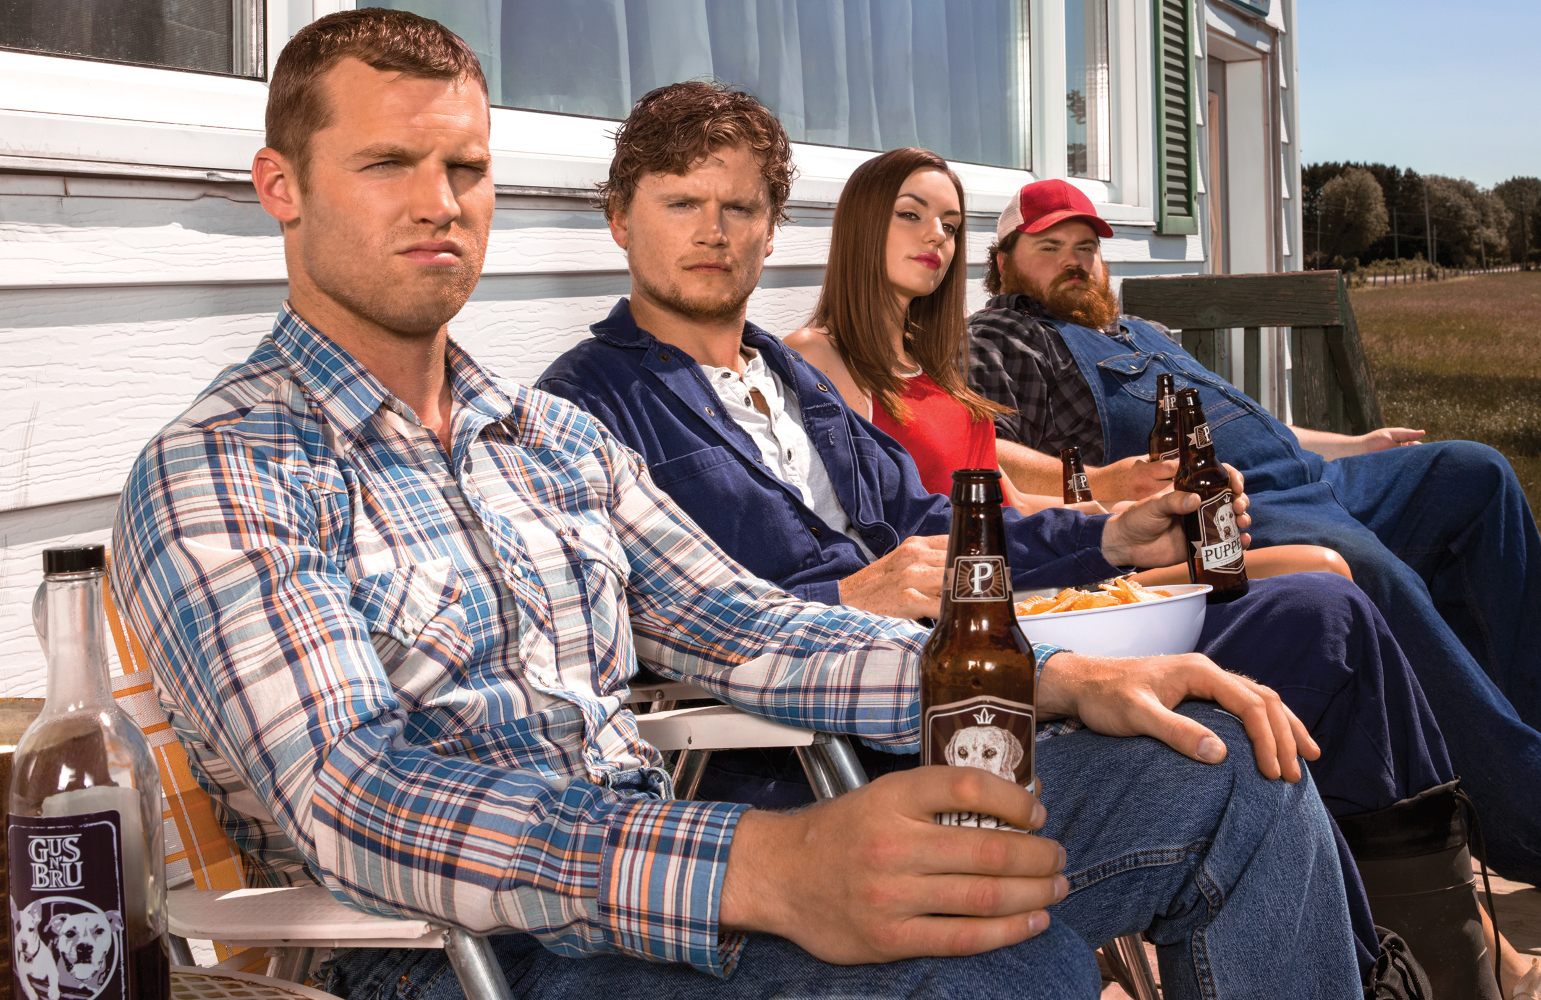 Letterkenny's resident hicks Wayne (Jared Keeso), Daryl (Nathan Dales), Katy (Michelle Mylett) and Dan (K. Trevor Wilson). (Photo: Crave/Hulu)